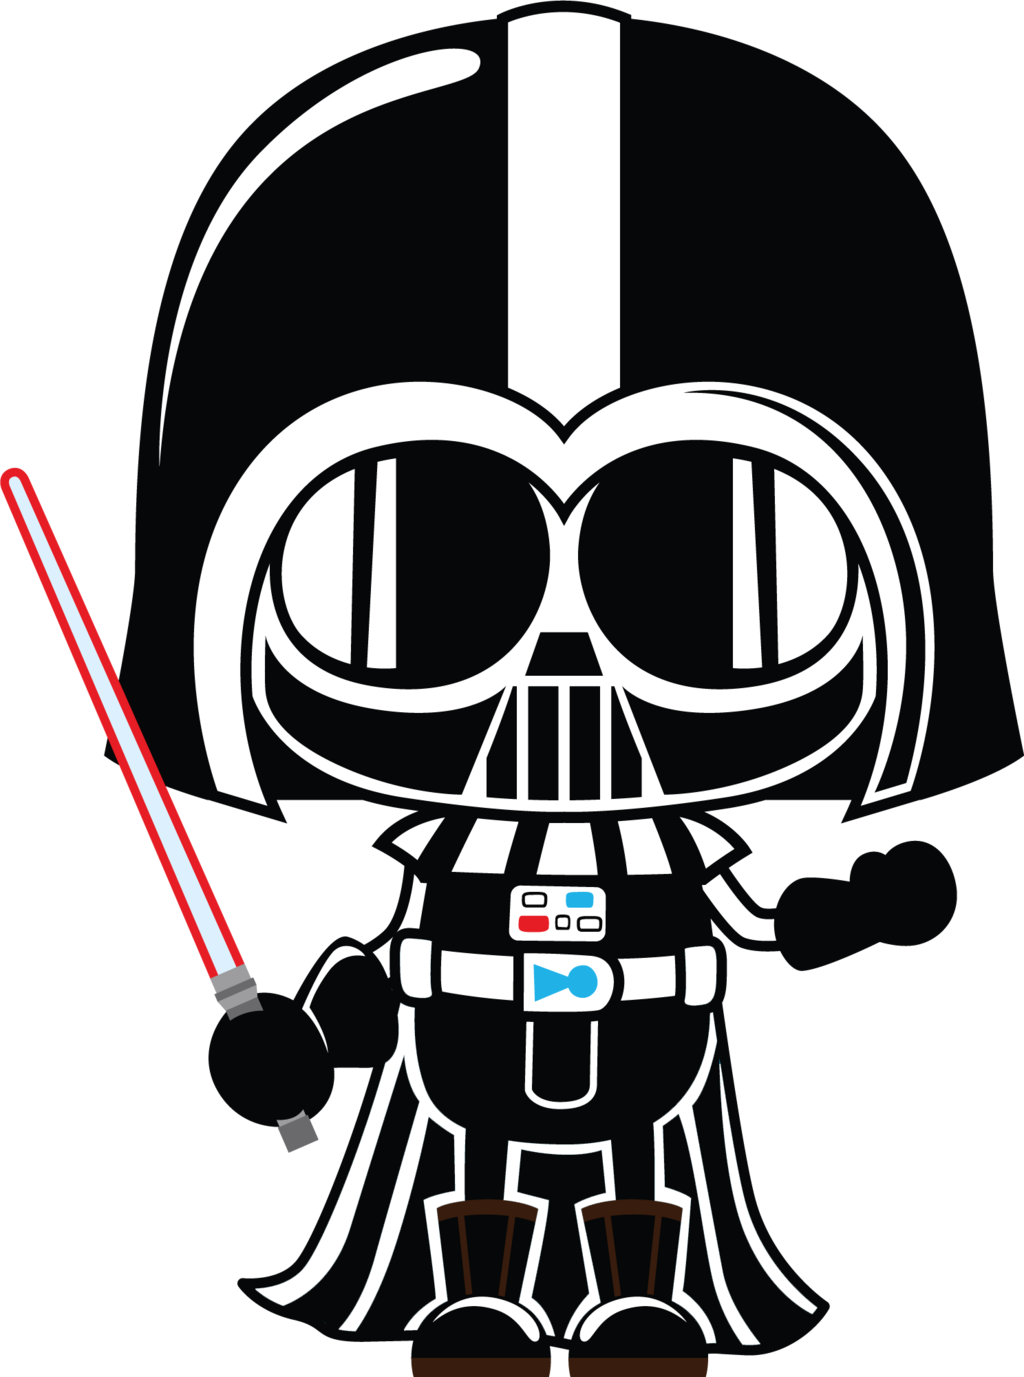 Star wars faces clipart vector freeuse stock Darth Vader Face Drawing at GetDrawings.com | Free for personal use ... vector freeuse stock